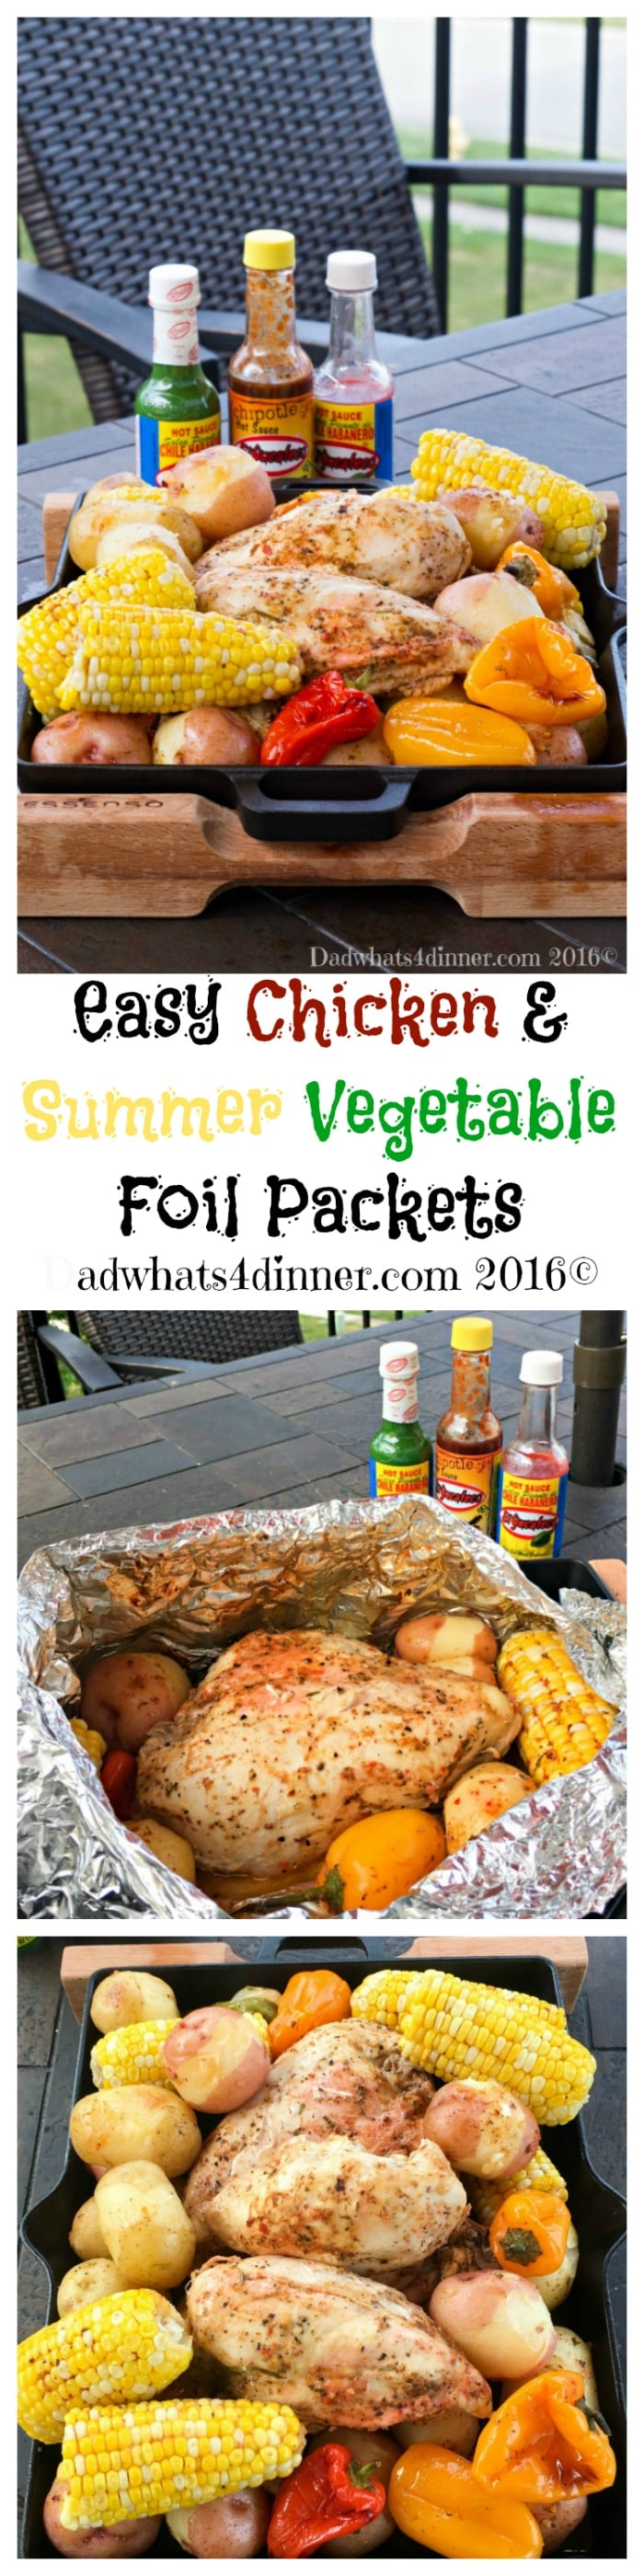 Go Native with my flavorful and Easy Chicken & Summer Vegetable Foil Packets with Habanero Butter made with El Yucateco® Red Habanero Sauce. www.dadwhats4dinner.com